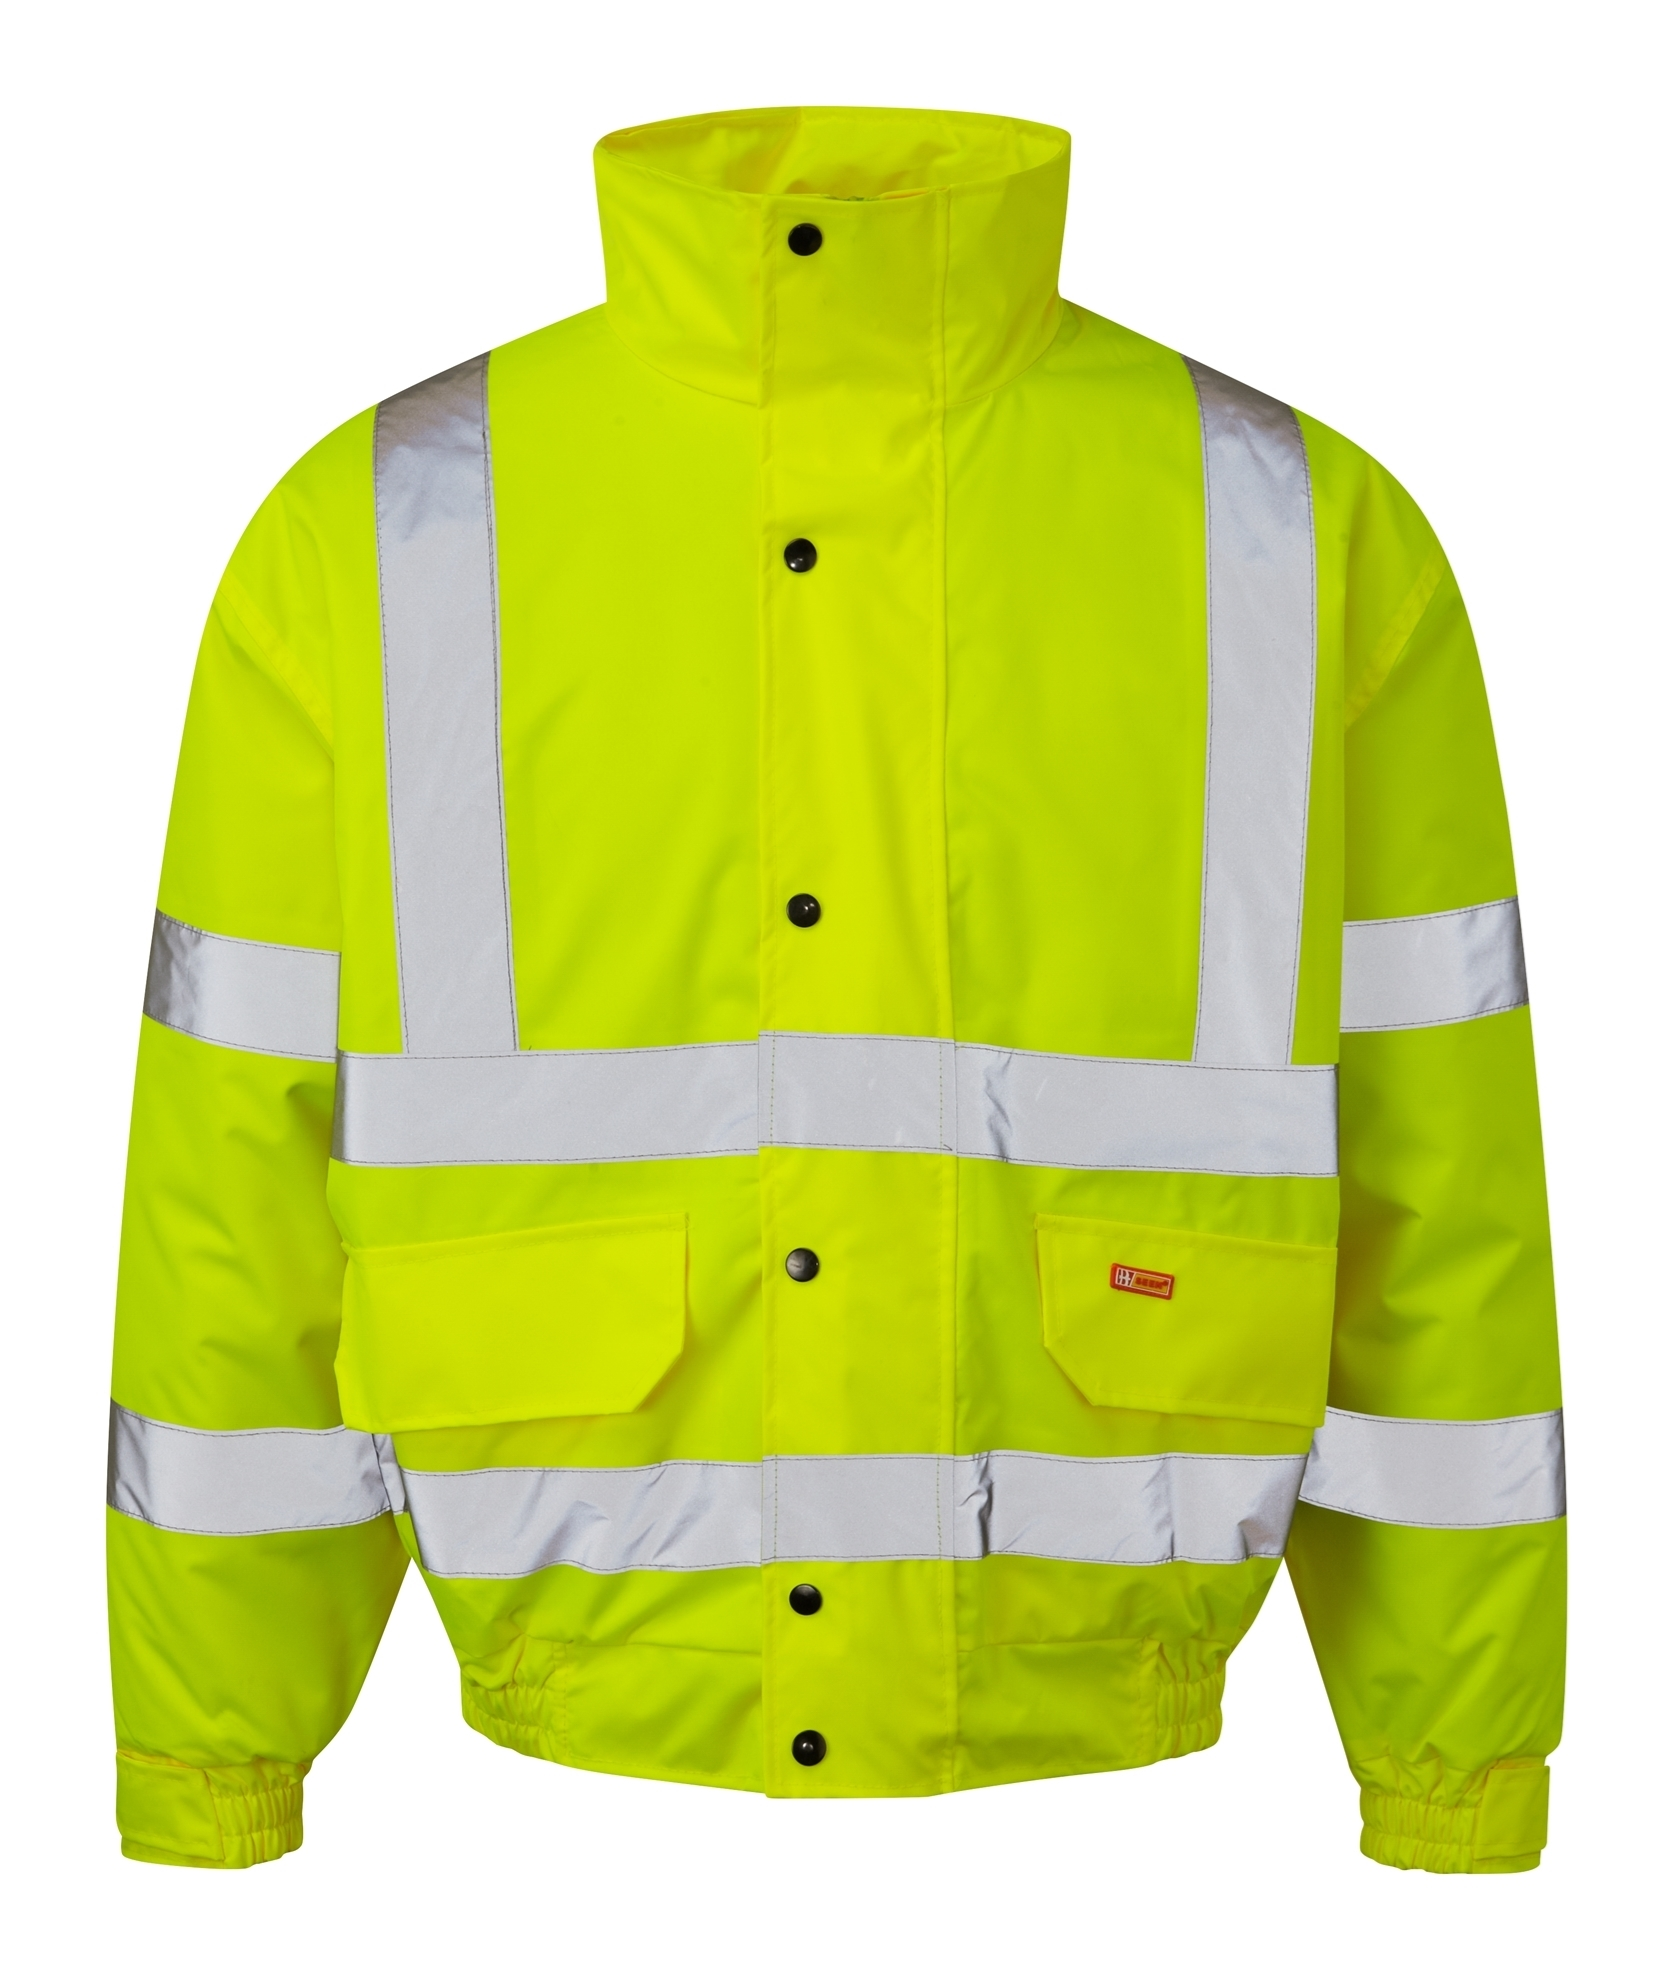 Picture of Hi-Vis Bomber Jacket (Constructor Bomber Jacket ) - Yellow